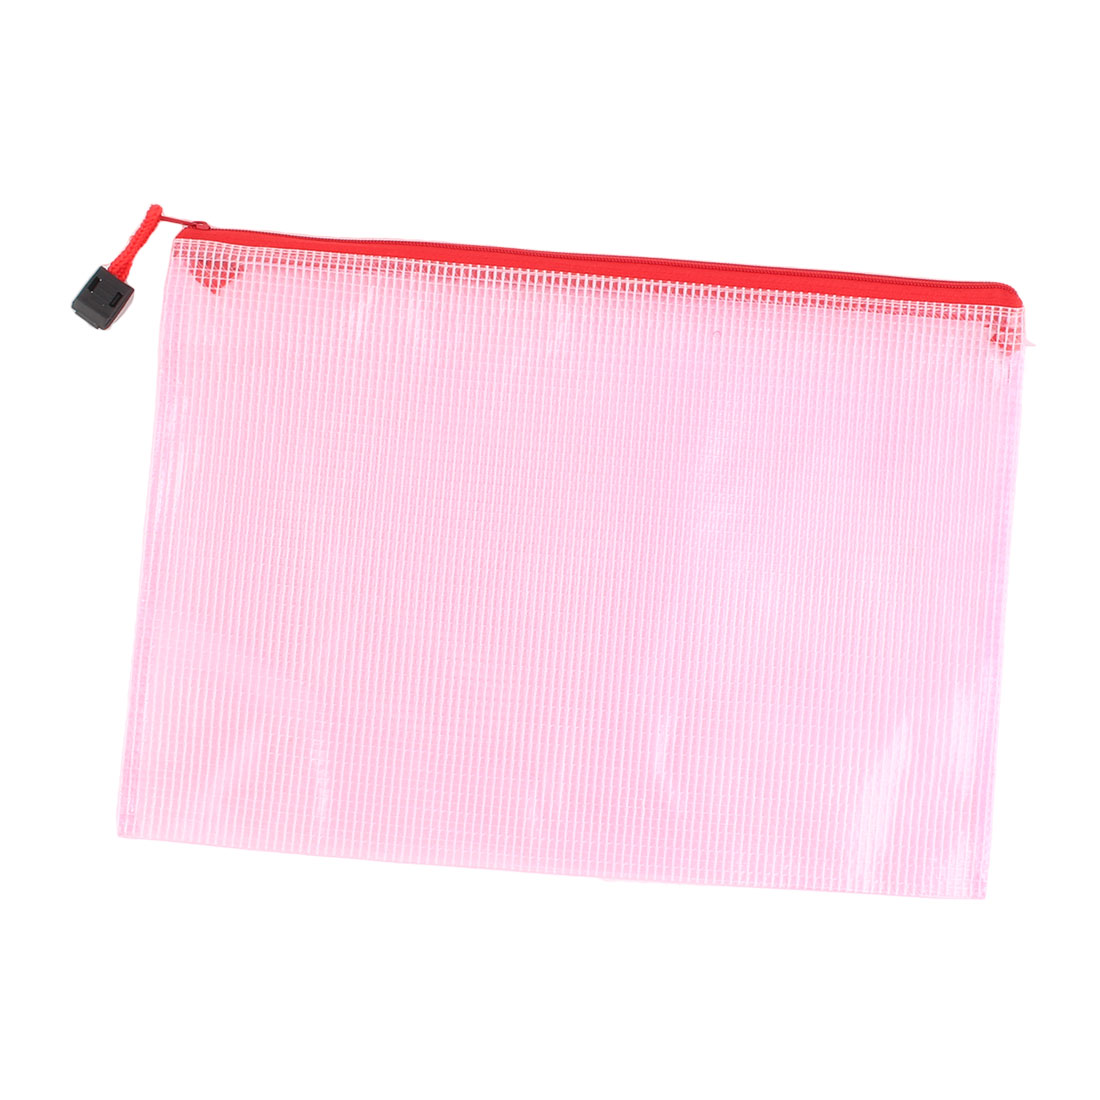 School Office Grid Pattern A5 Document File Zippered Folder Holder Bag Pink